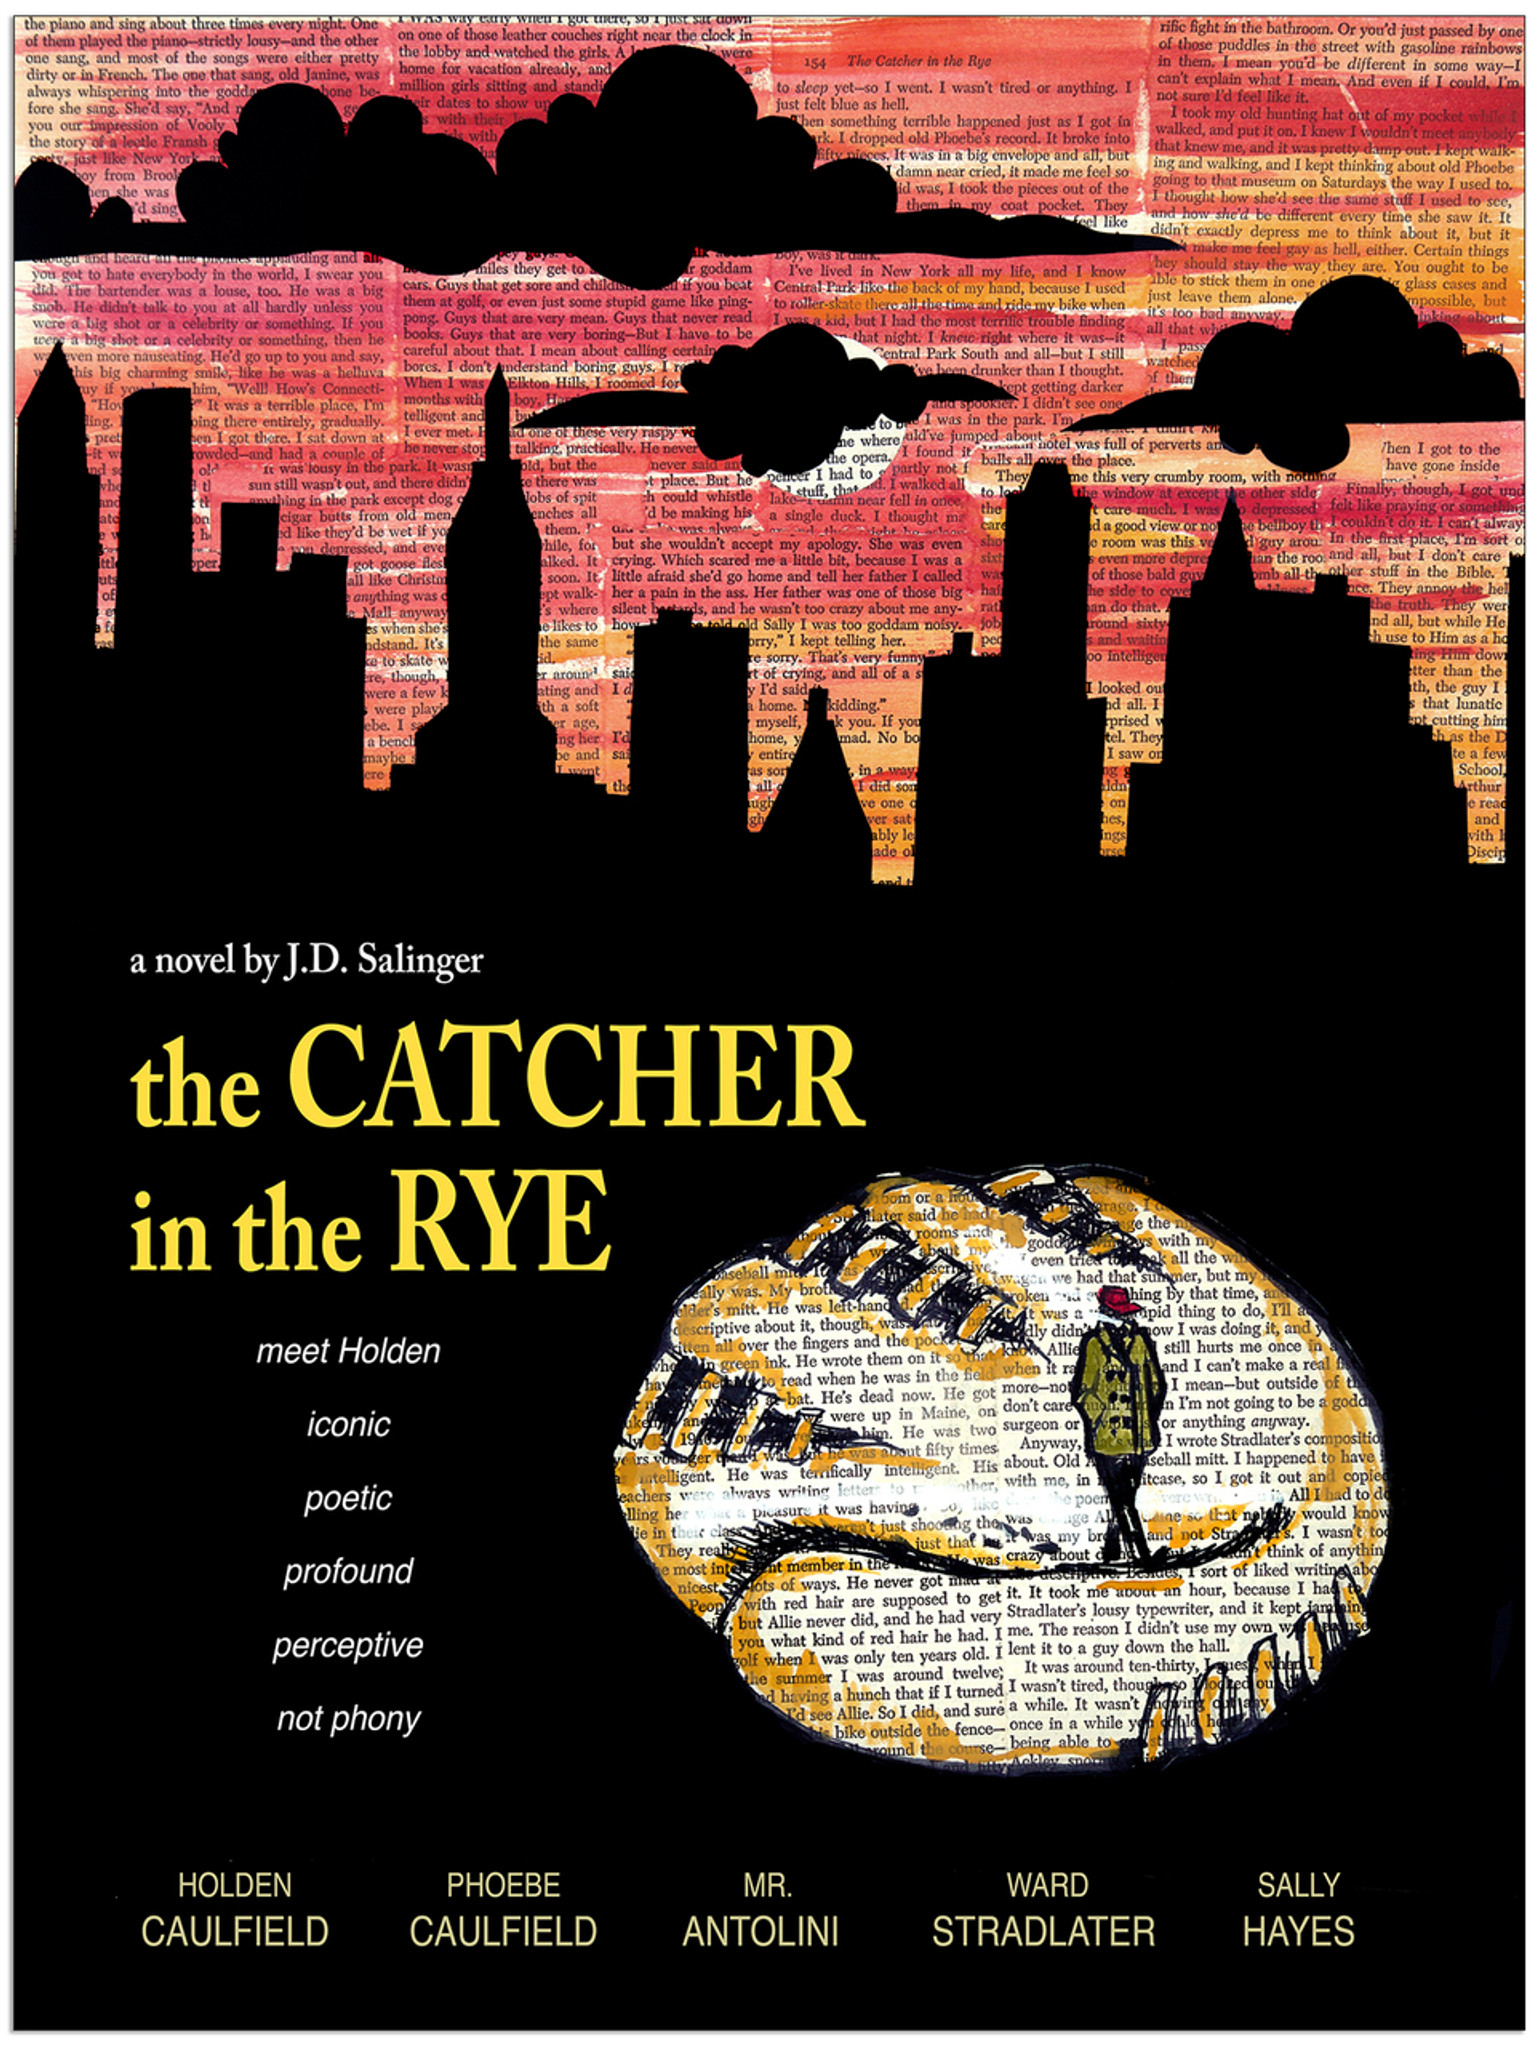 The Catcher In The Rye Jd Salinger Classic Novel Fine Art Print For Home Office Library Or Classroom